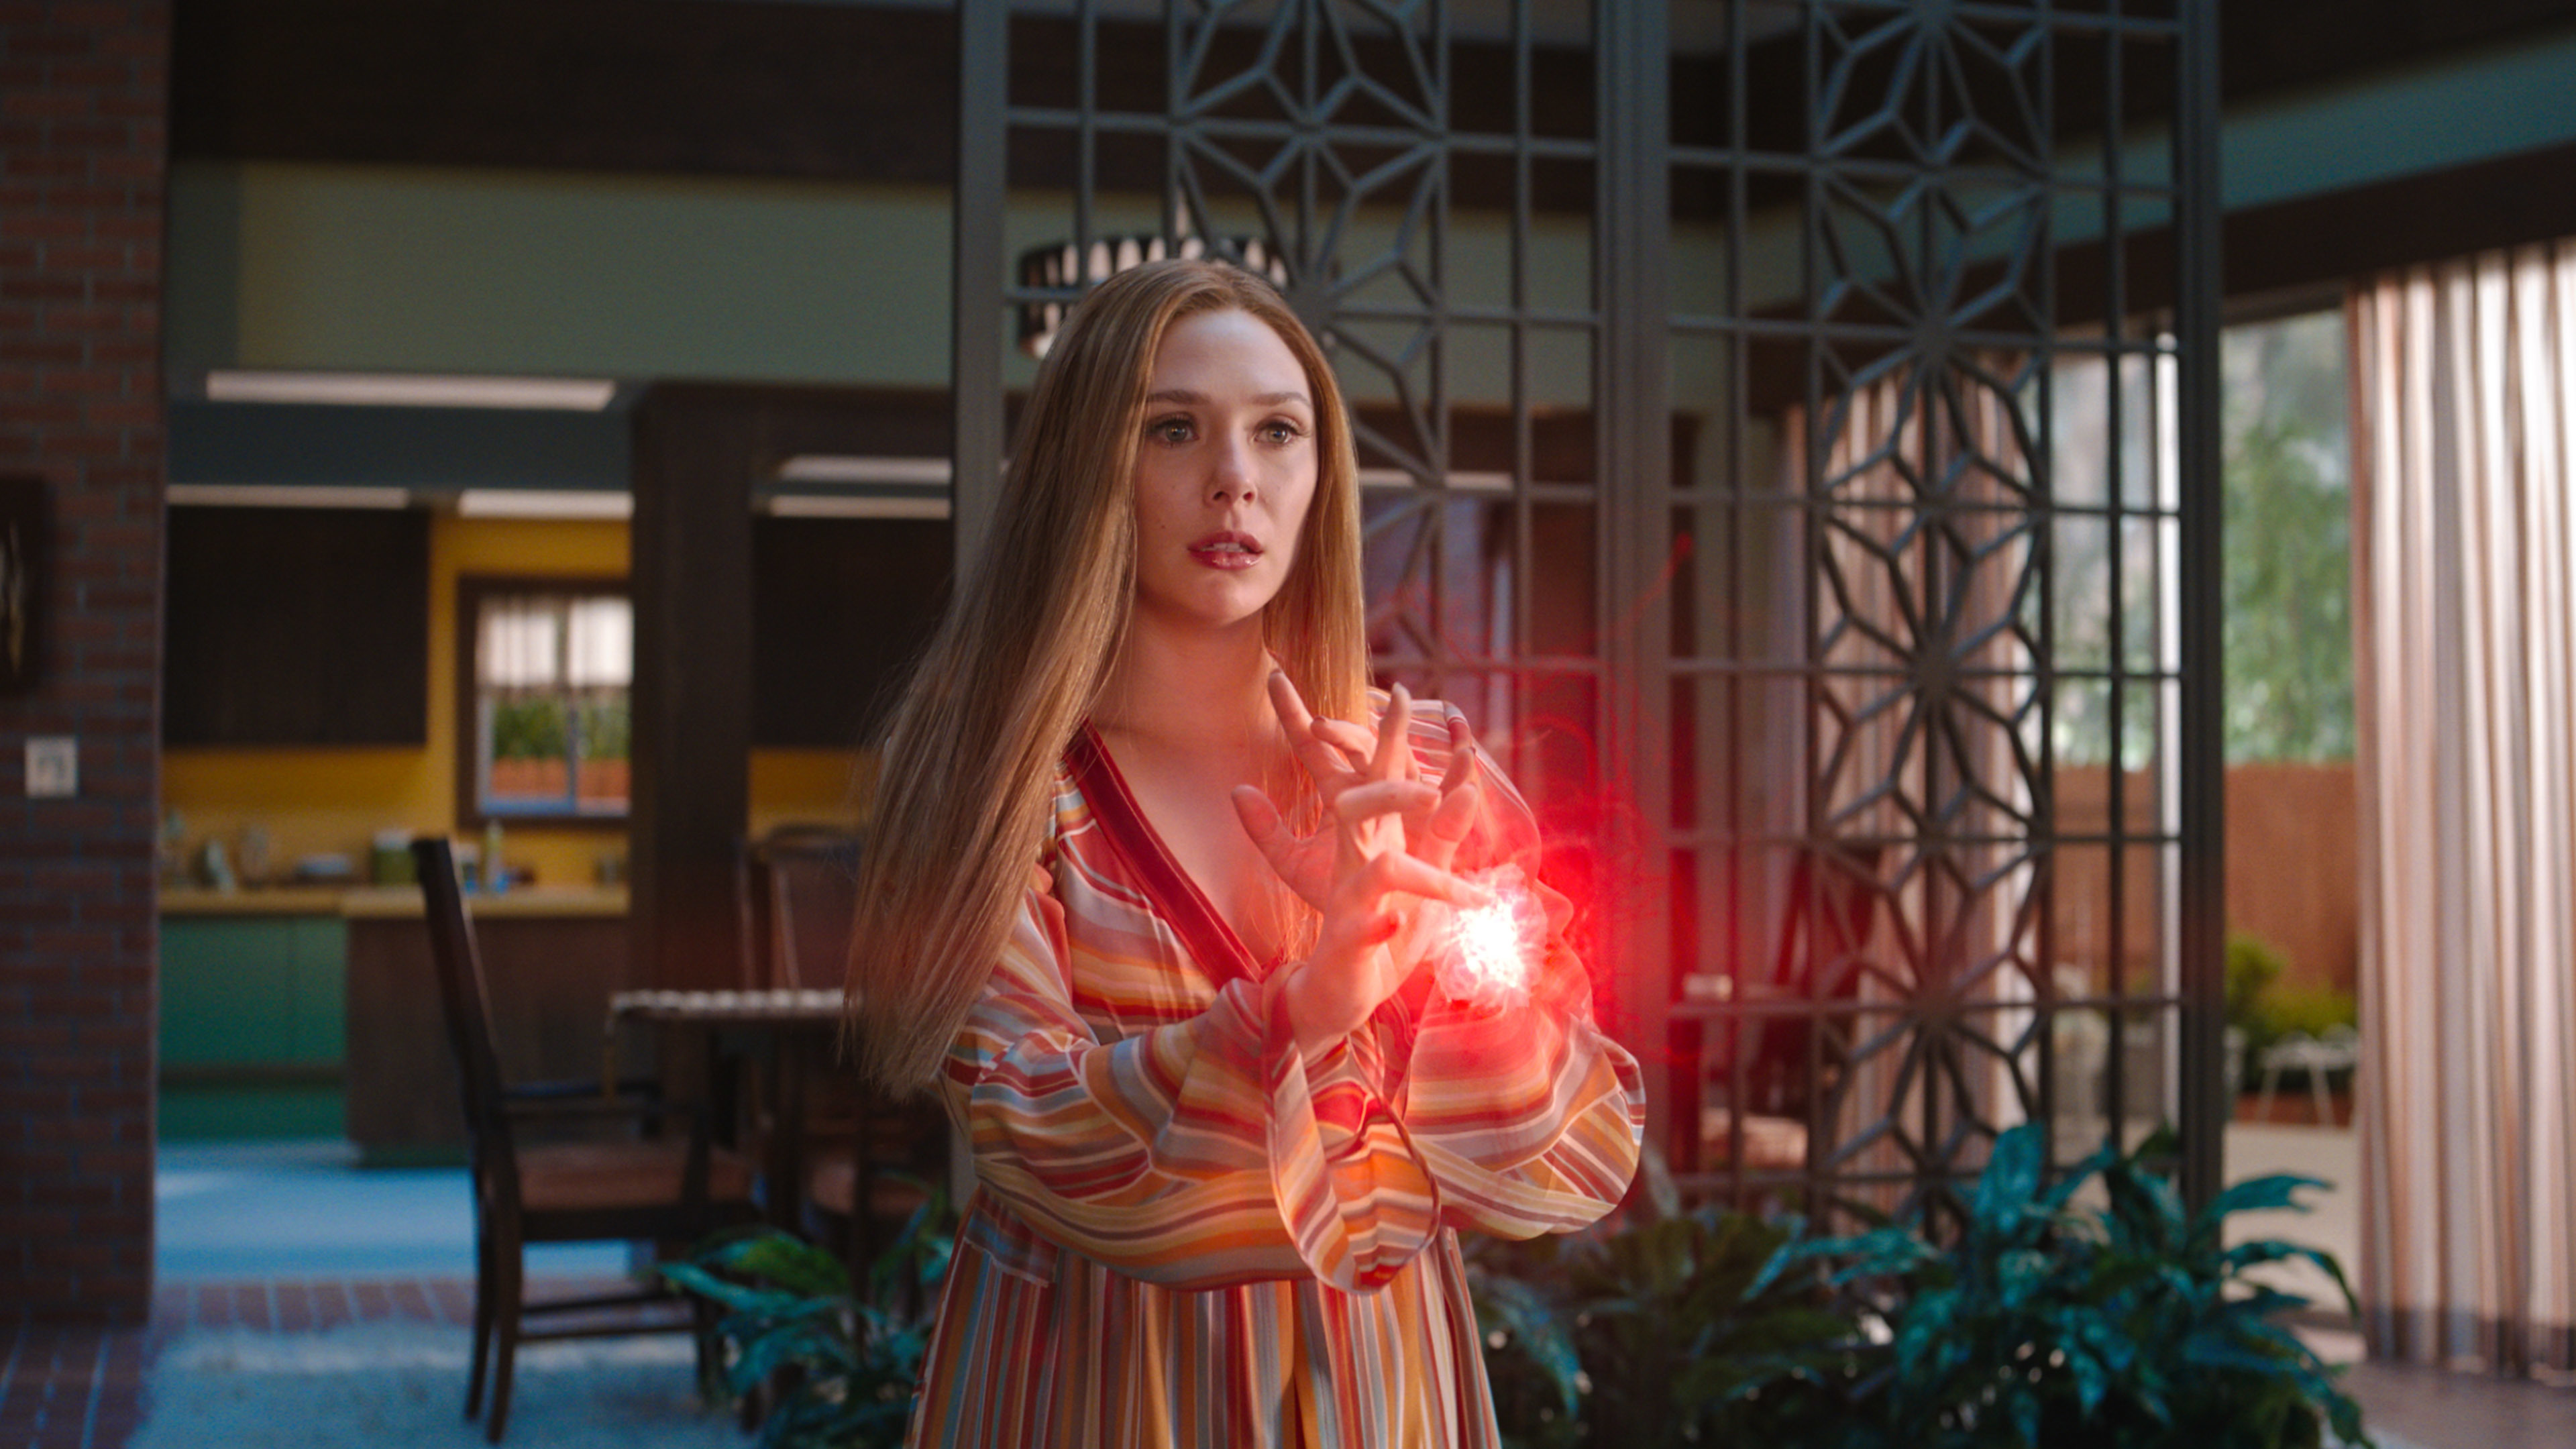 A red ball of energy glows in Wanda's hands as she prepares to do some magic.